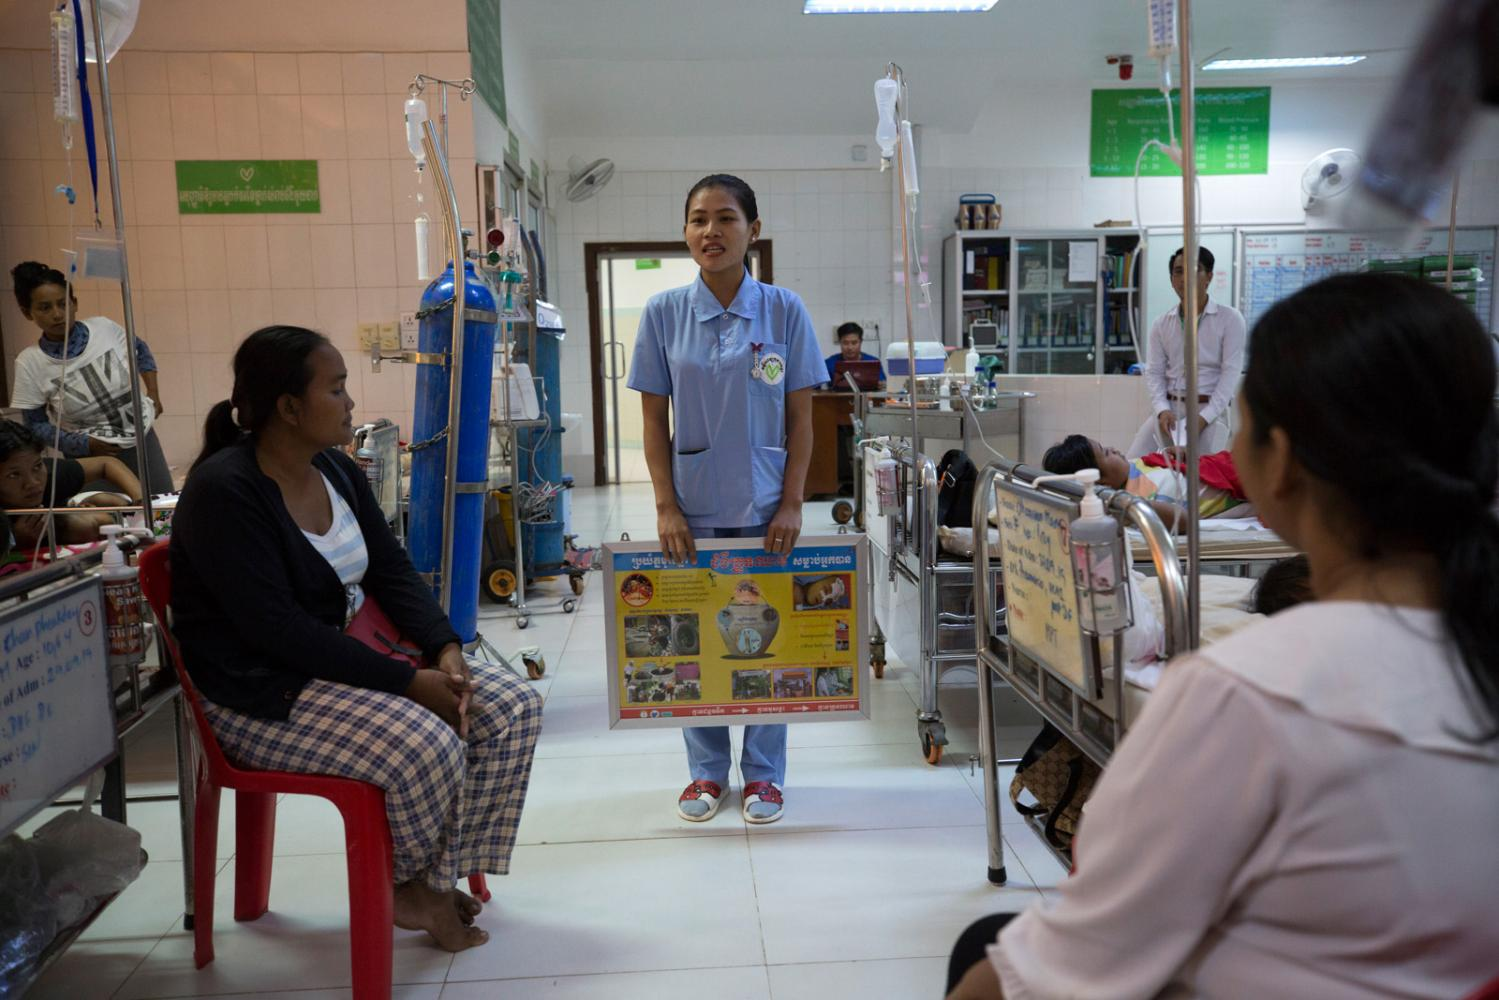 Due to the influx of dengue fever patients this year the nurses regularly give talks to patients on how to mitigate the problem of dengue fever and what causes it in the inpatient ward of the Angkor Hospital for Children. Siem Reap, Cambodia - October 2019